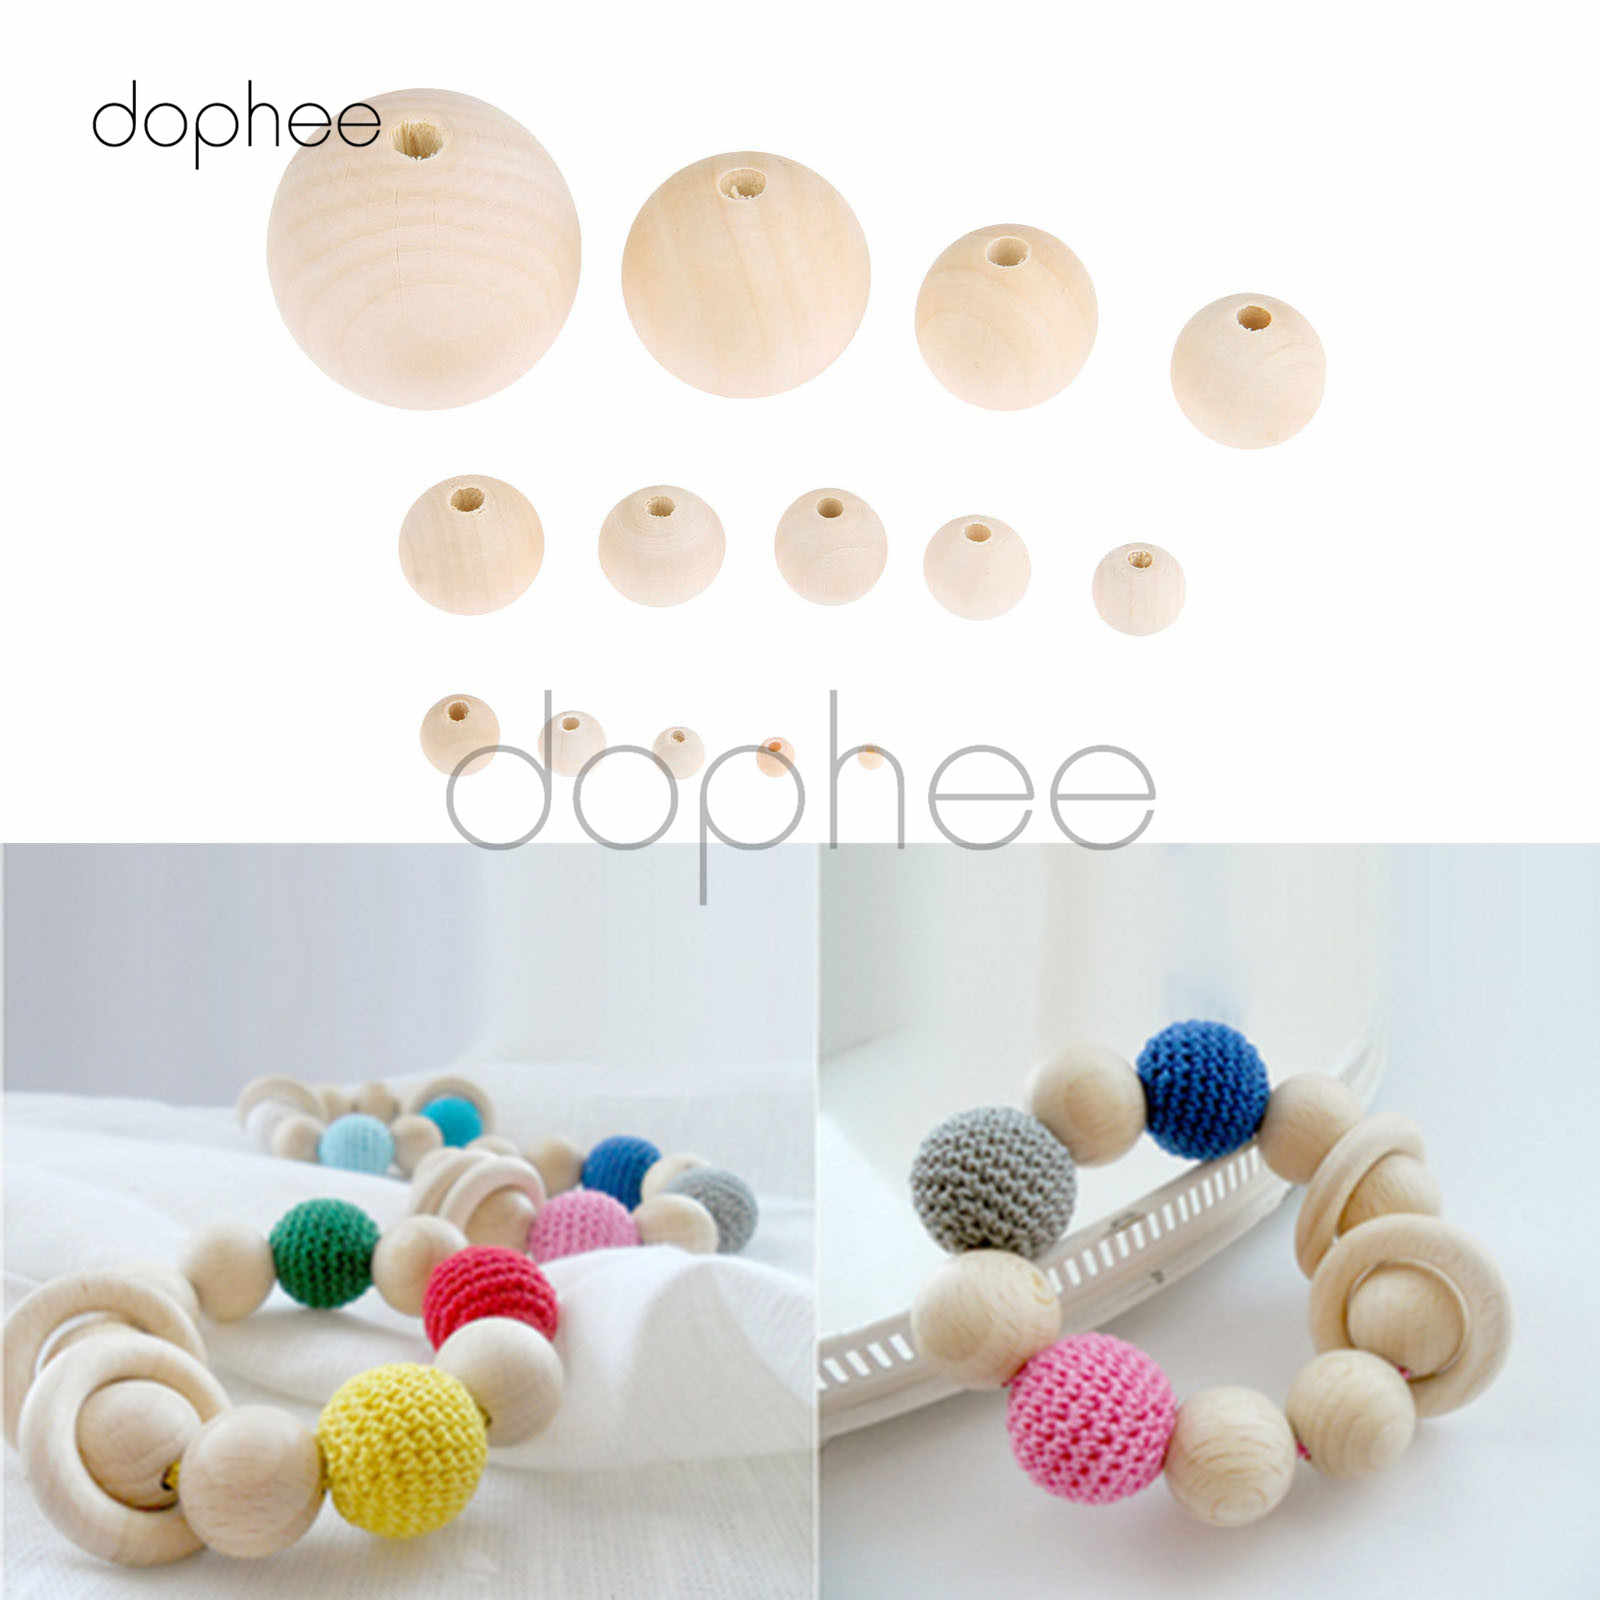 dophee 2-50pcs Multi-Size Natural Wooden Beads Round Natural Color For Artwork Necklace Making Garment Decorations Accessories